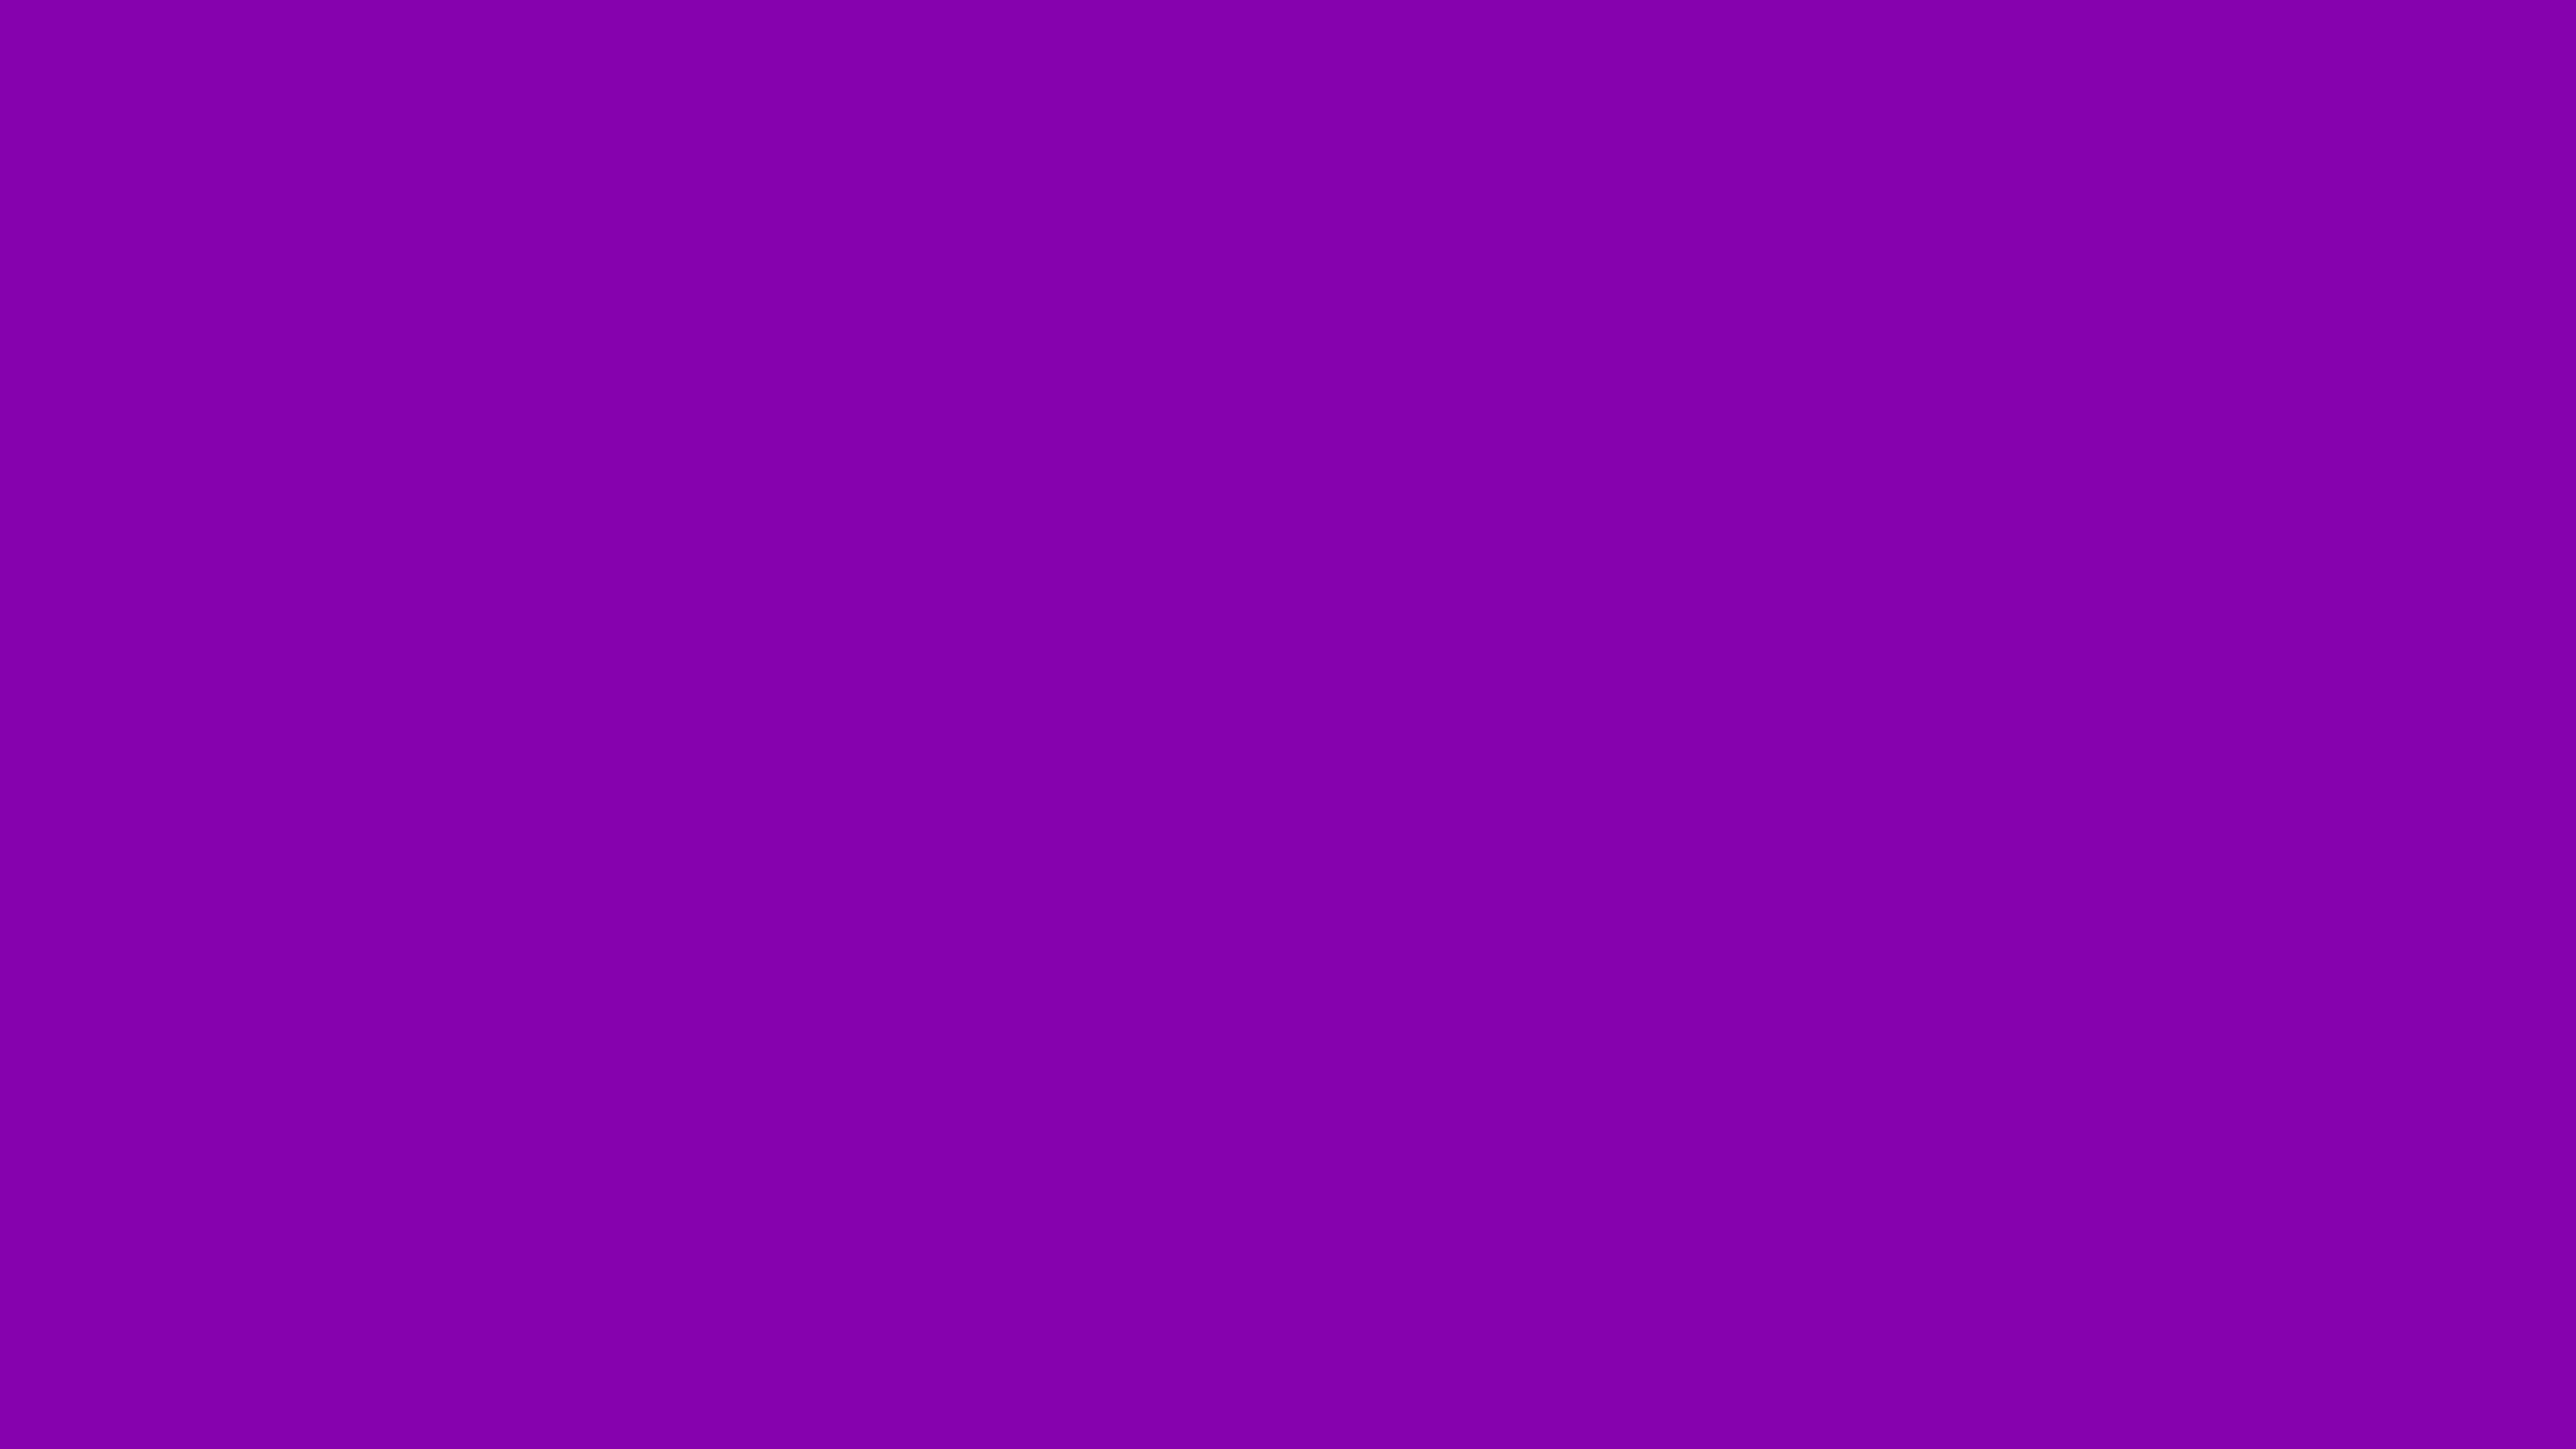 4096x2304 Violet RYB Solid Color Background